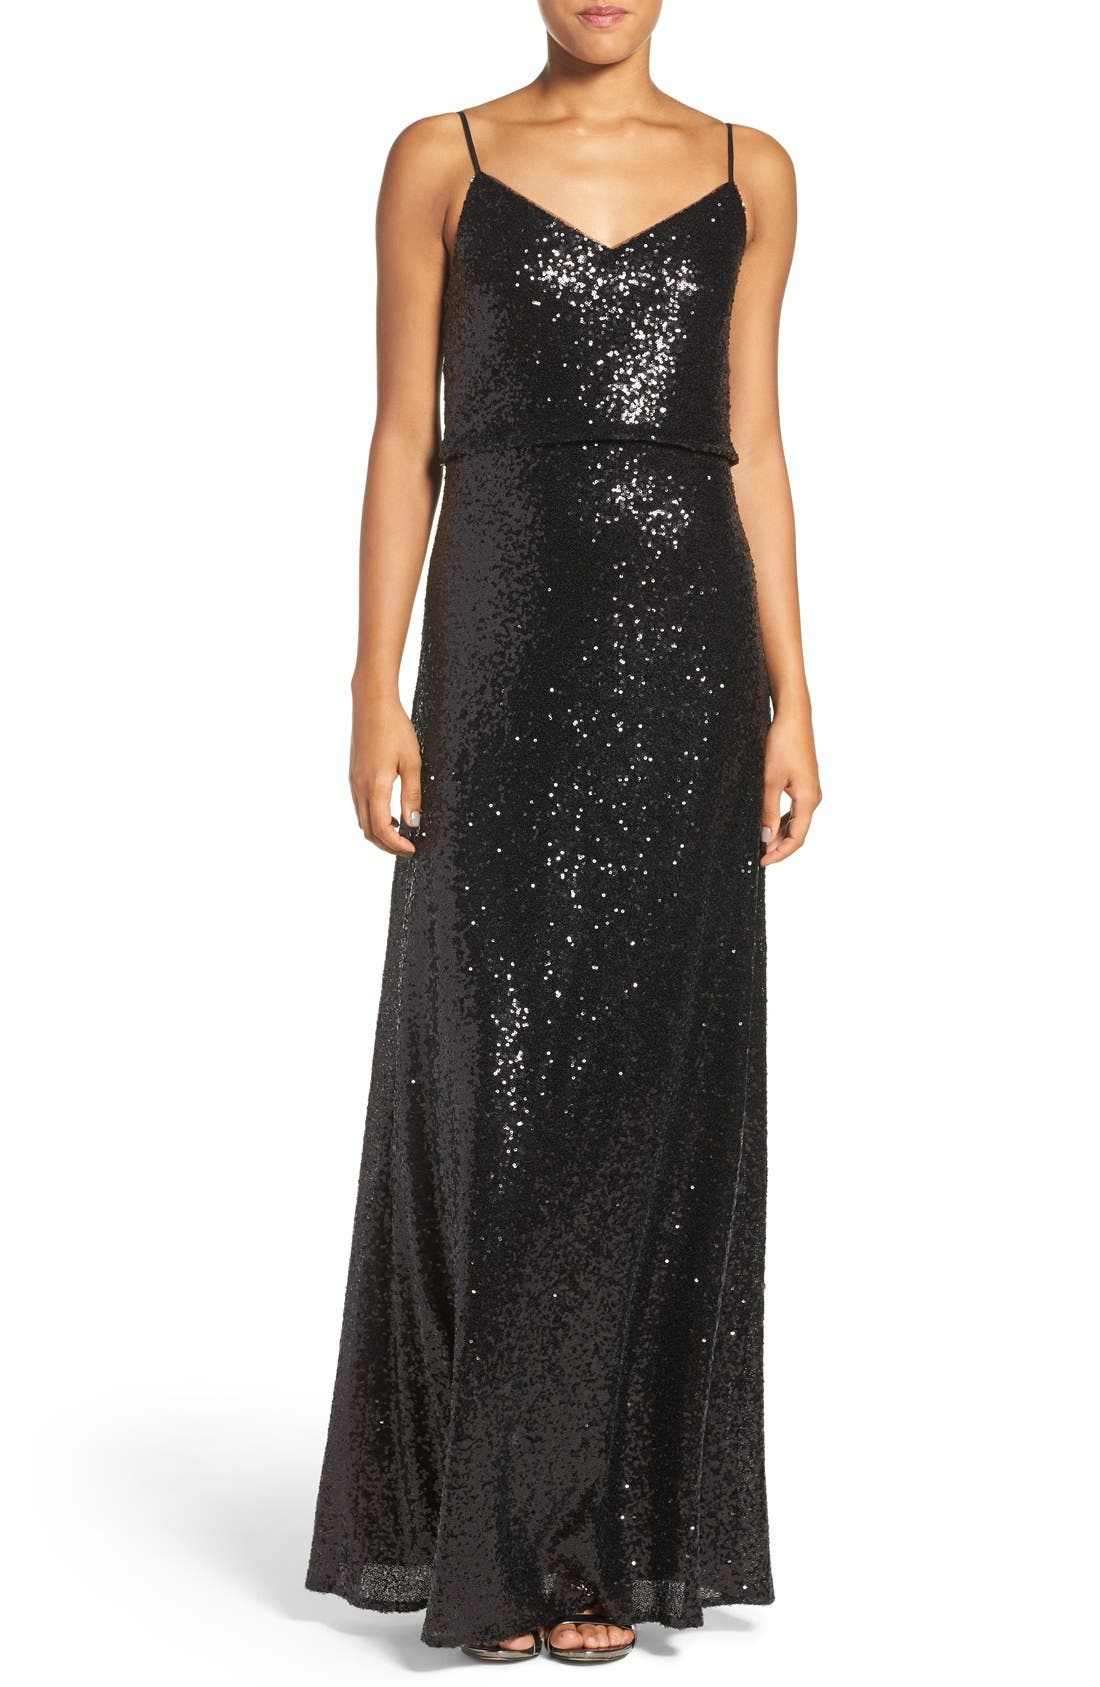 Main Image - Jenny Yoo 'Jules' Sequin Blouson Gown with Detachable Back Cowl